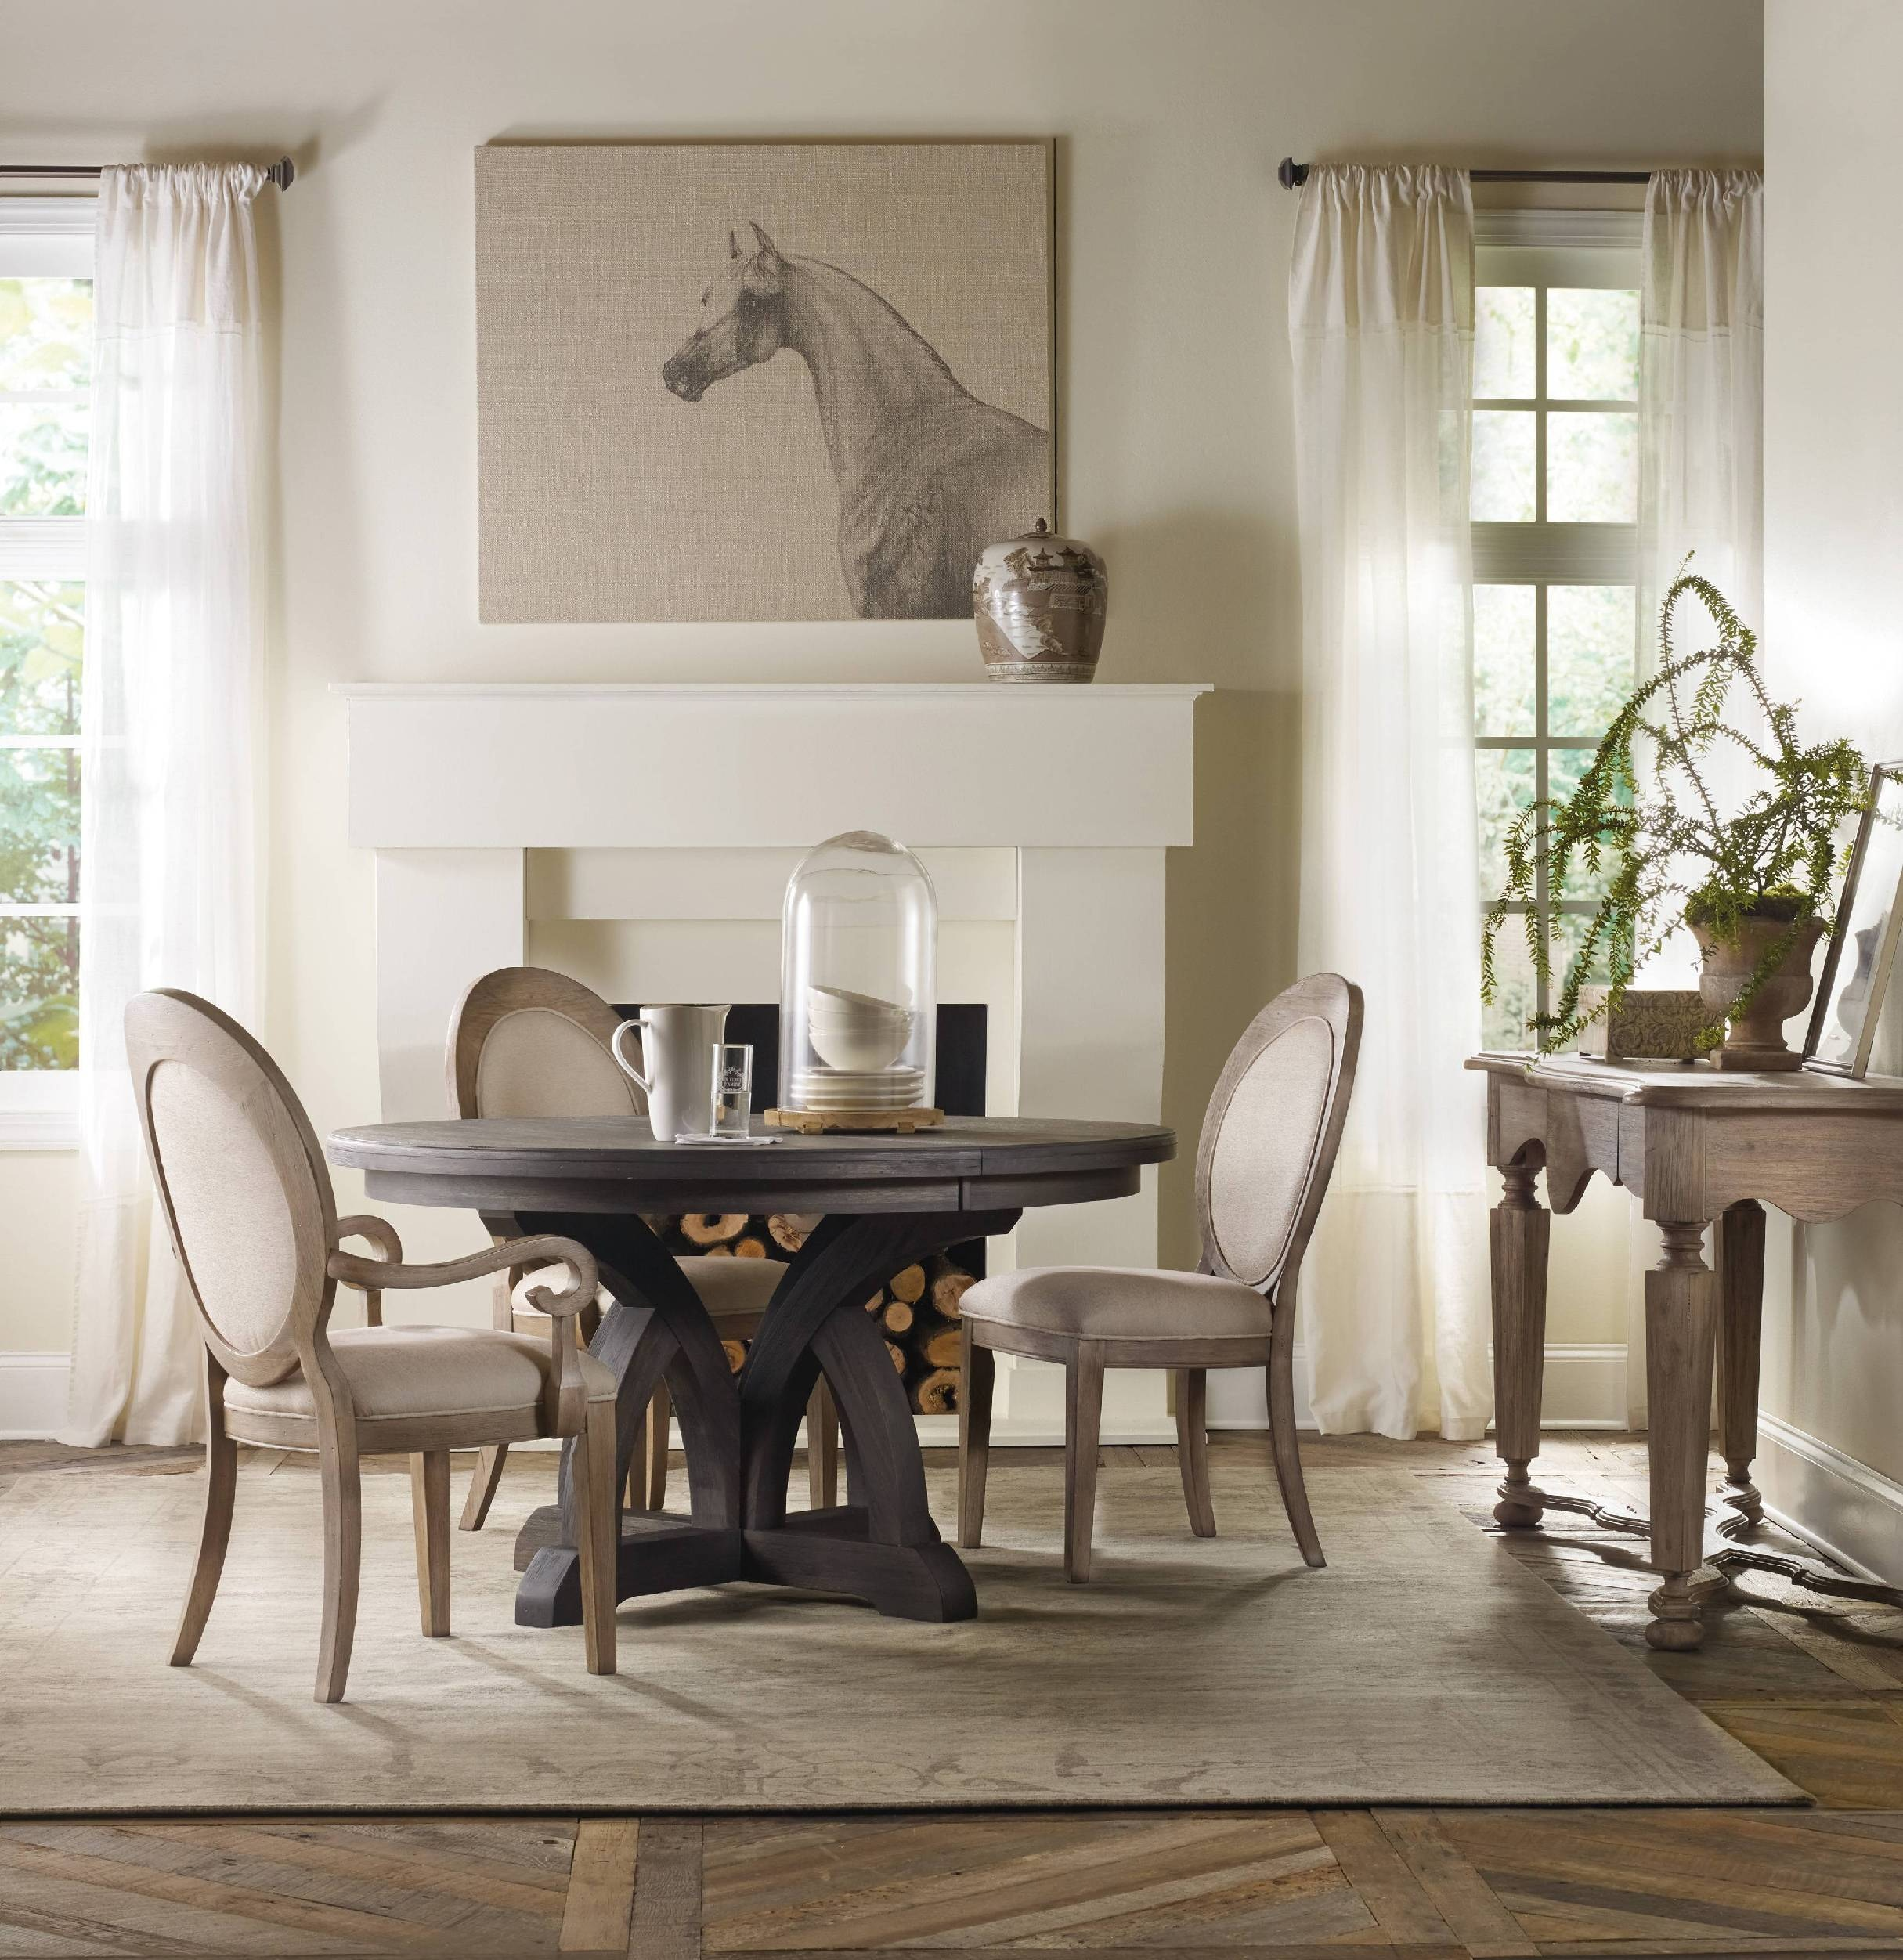 Round dining room sets with leaves - Hooker Furniture Corsica Dark Round Dining Table W 1 18in Leaf 5280 75203